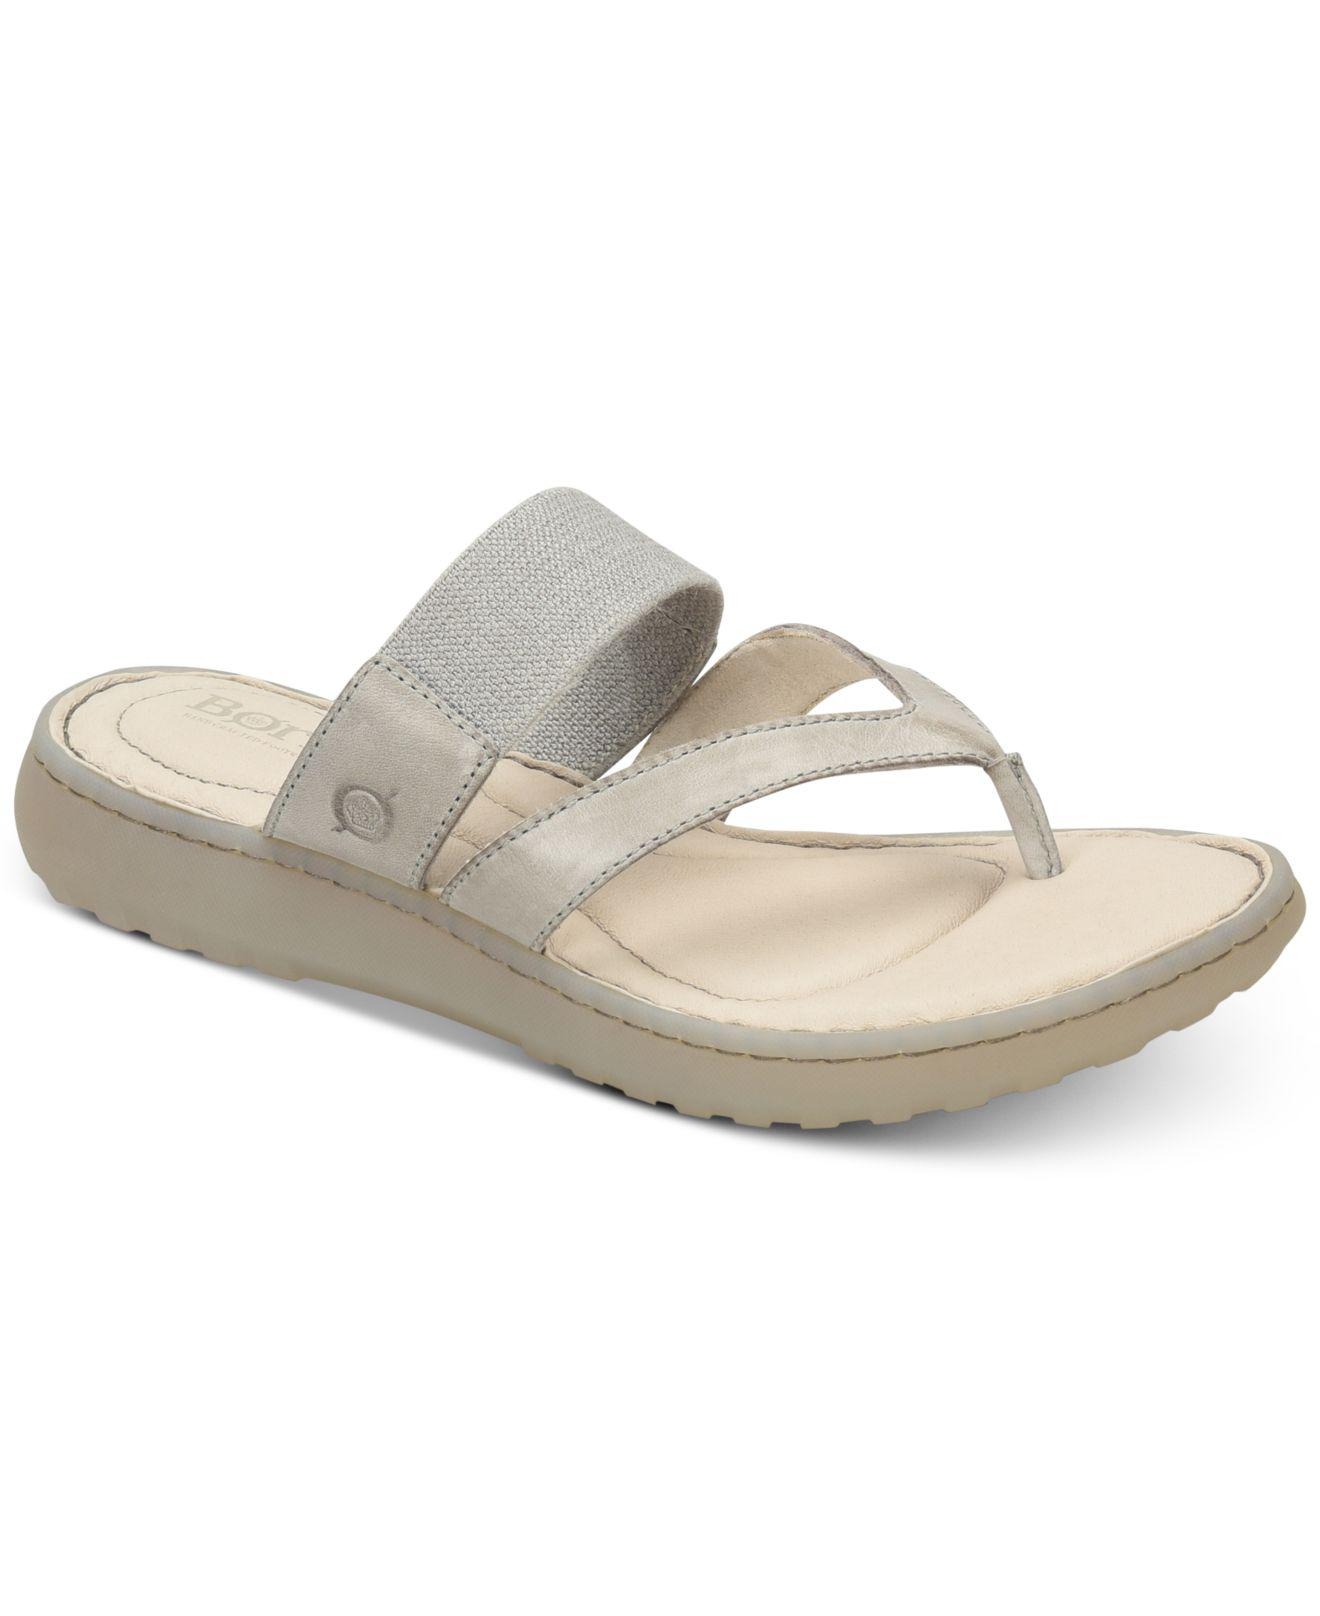 333eeda9757e Lyst - Born Nevis Flat Sandals in Gray